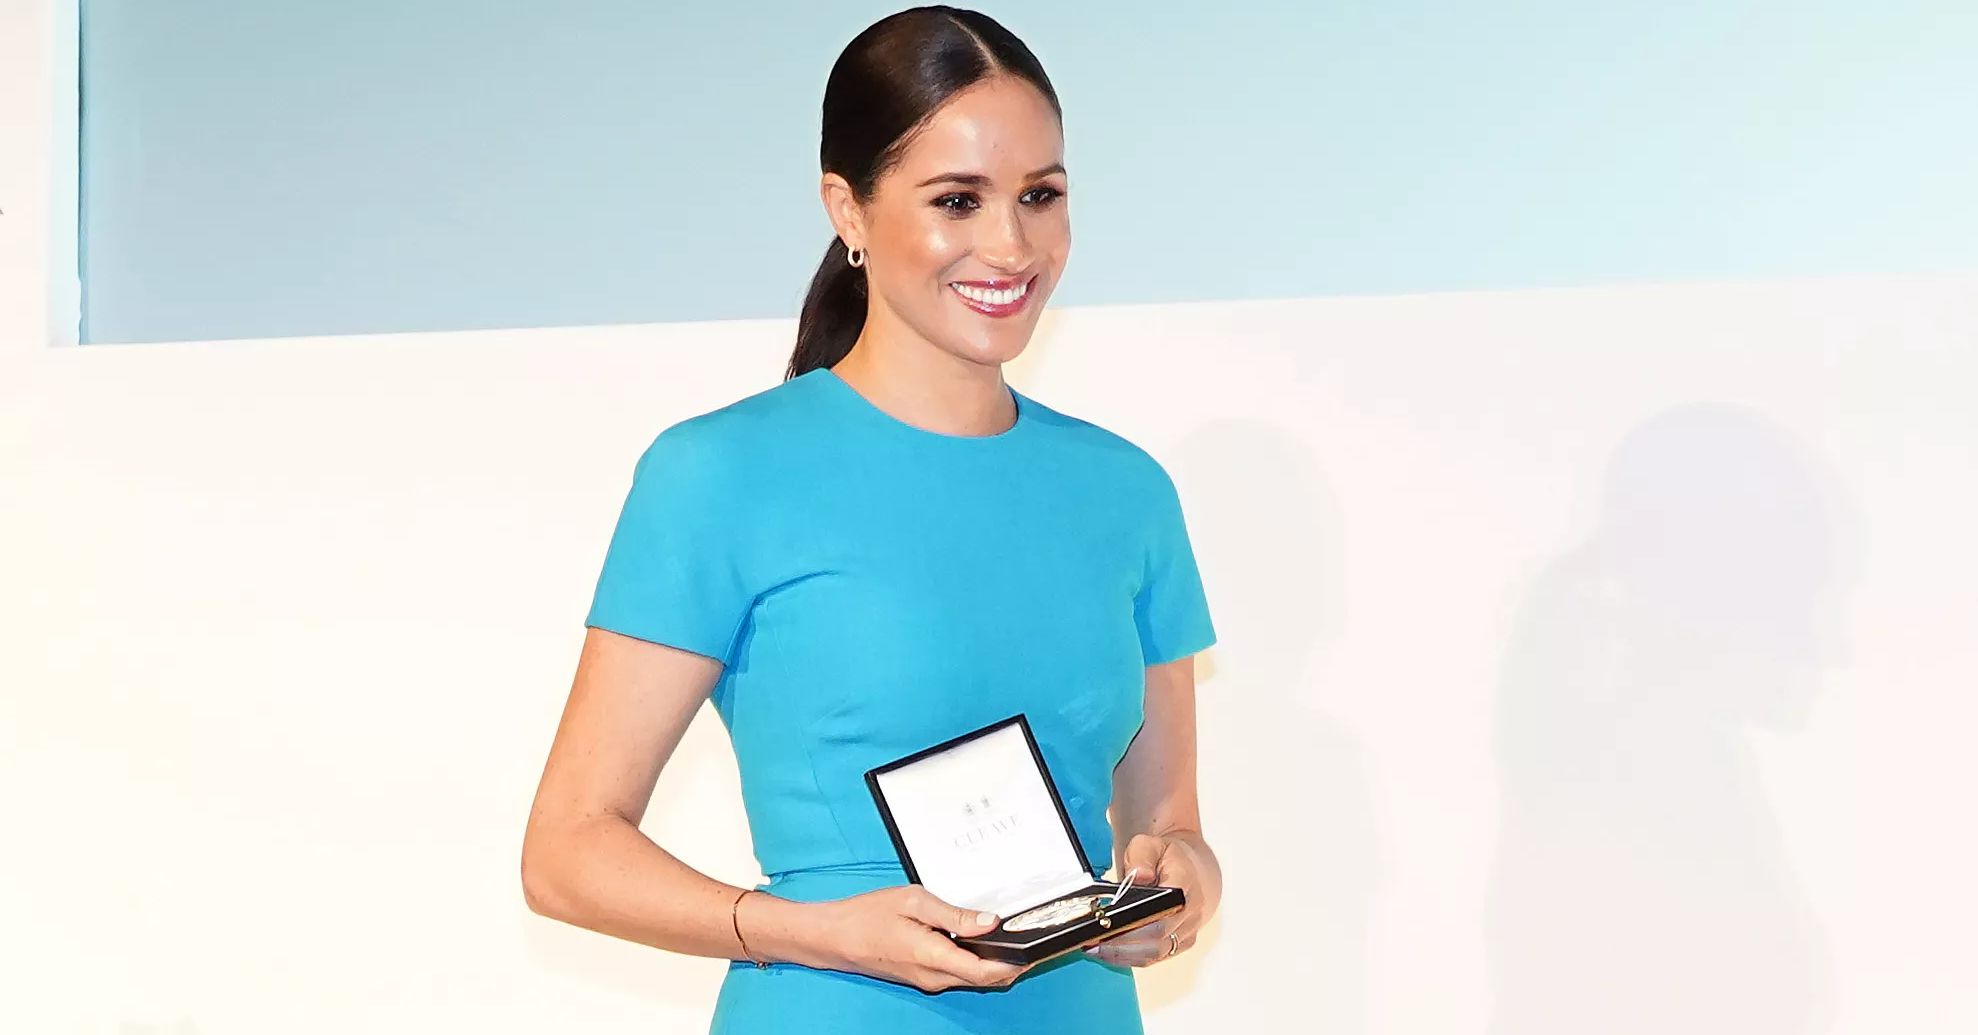 Does Meghan Markle Drink Alcohol? photo